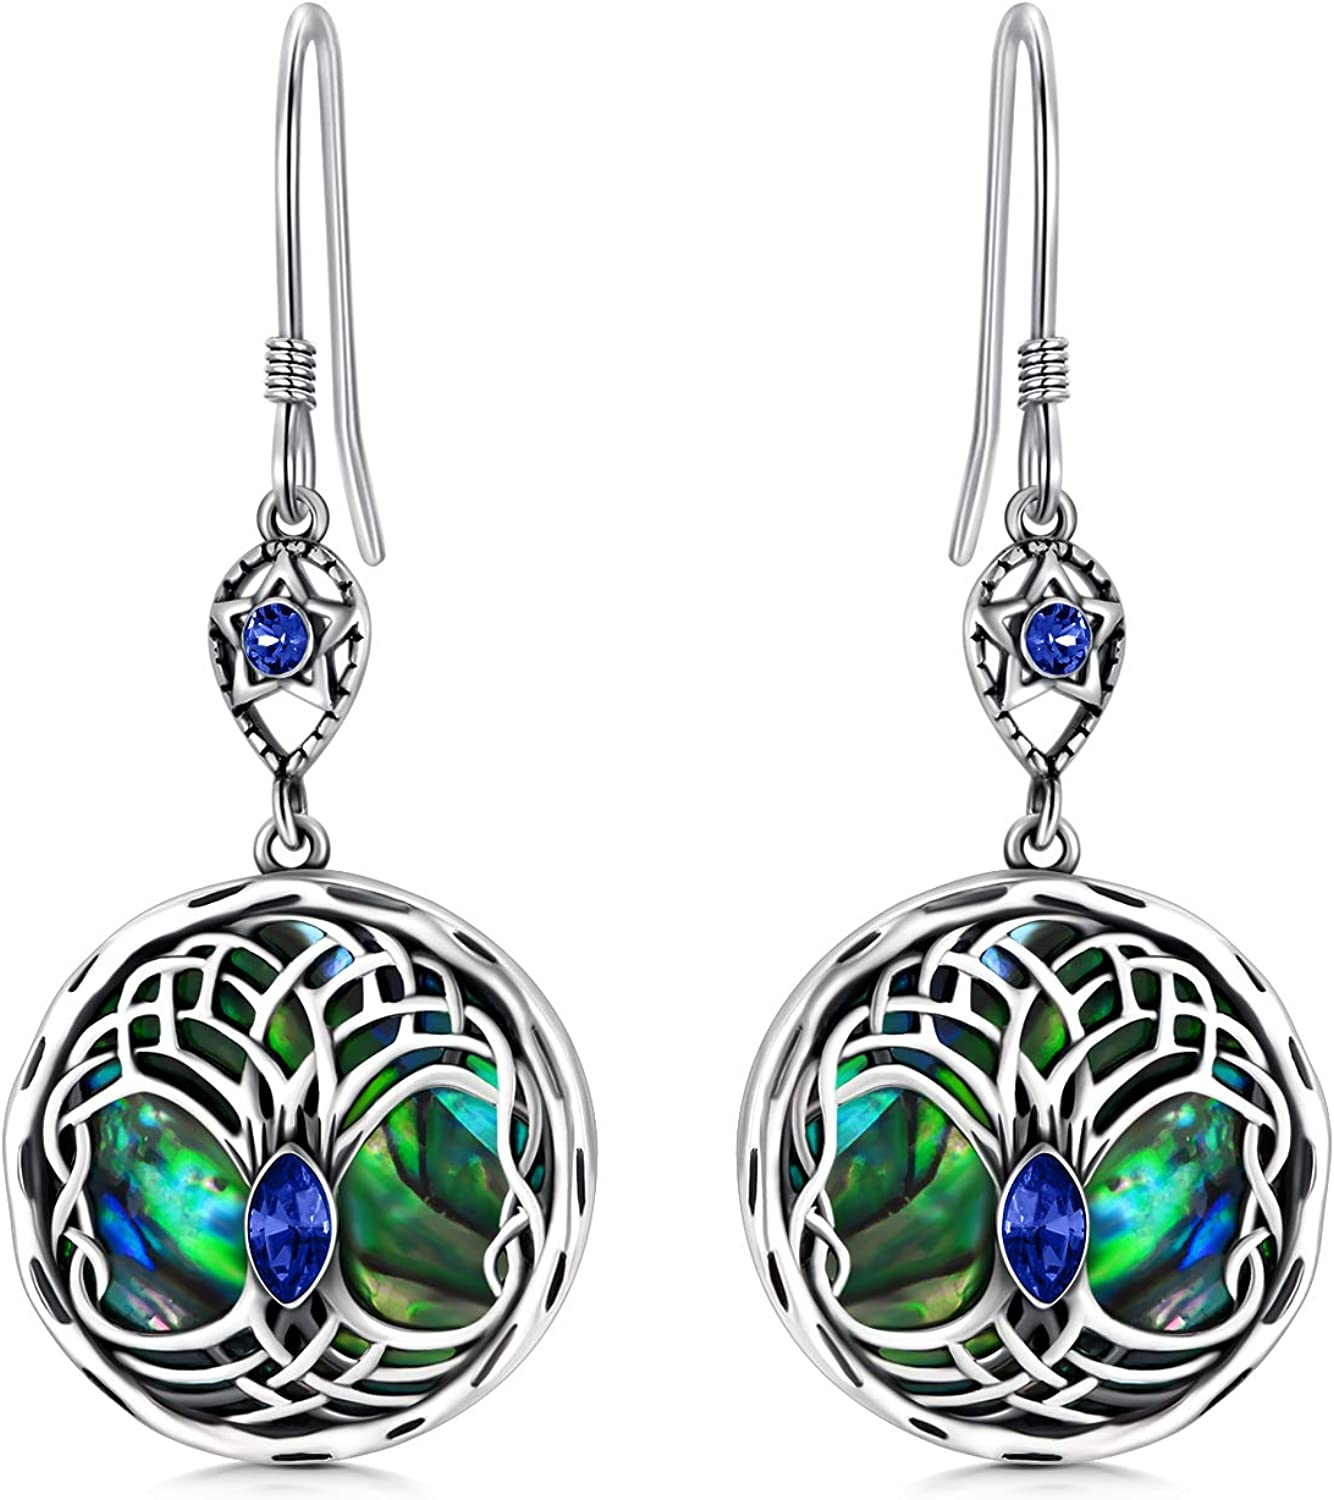 New products, world's highest quality popular! Celtic Tree of Life Earrings Silver Super sale period limited Dangle Sterling Family